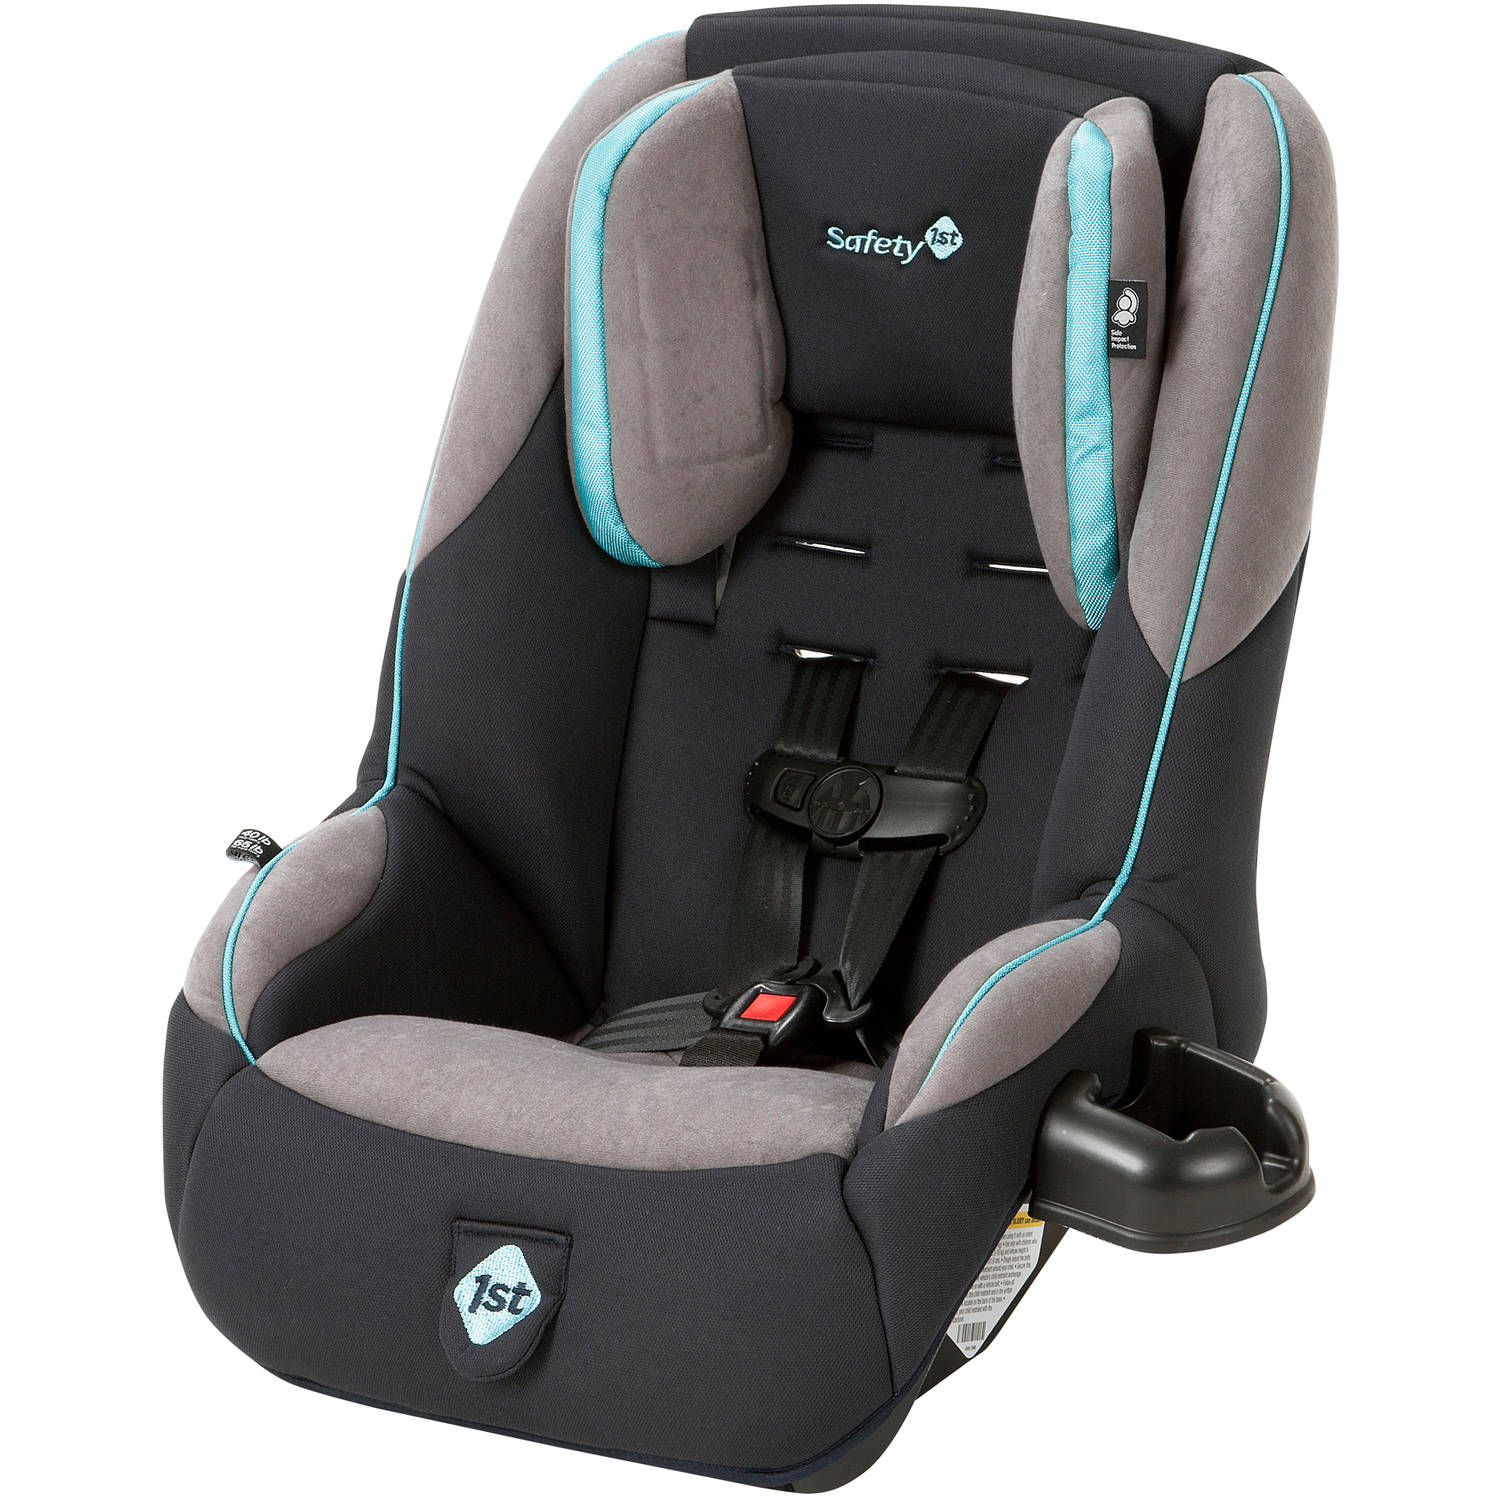 At Walmart, we have a wide selection of booster car seats and.